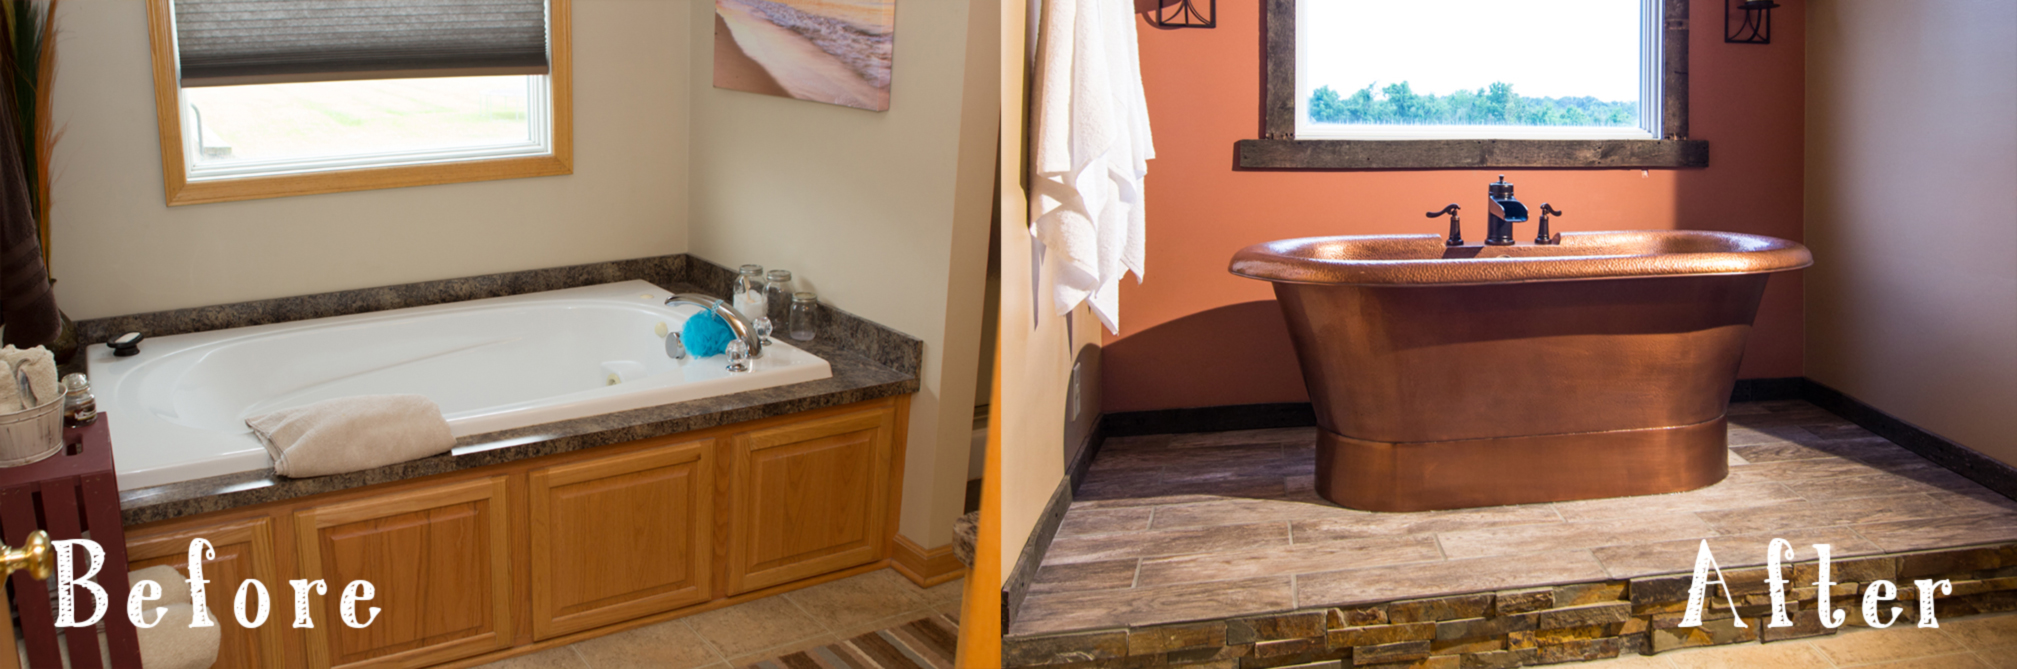 Before and After: A Copper Bathroom Duet - Sinkology